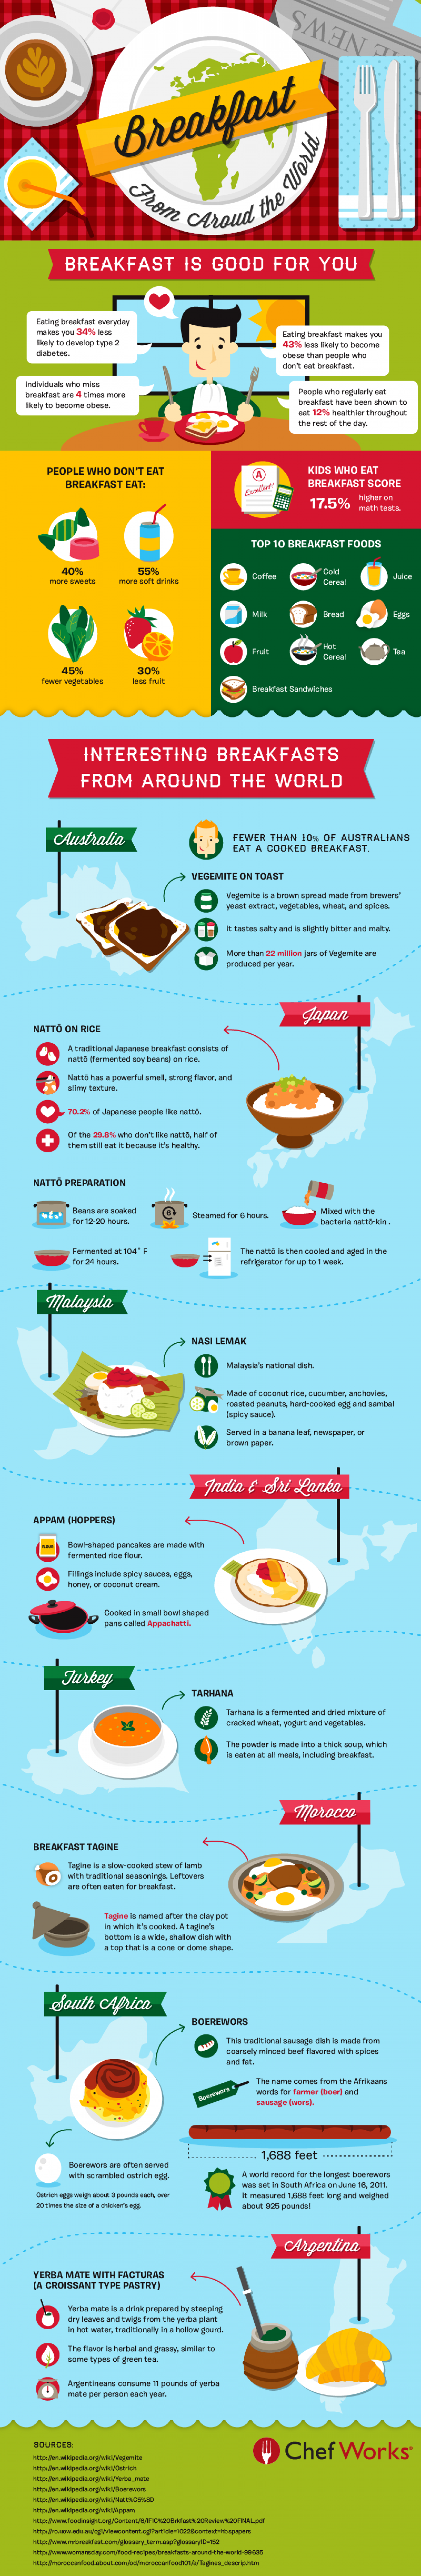 Breakfast From Around The World Infographic